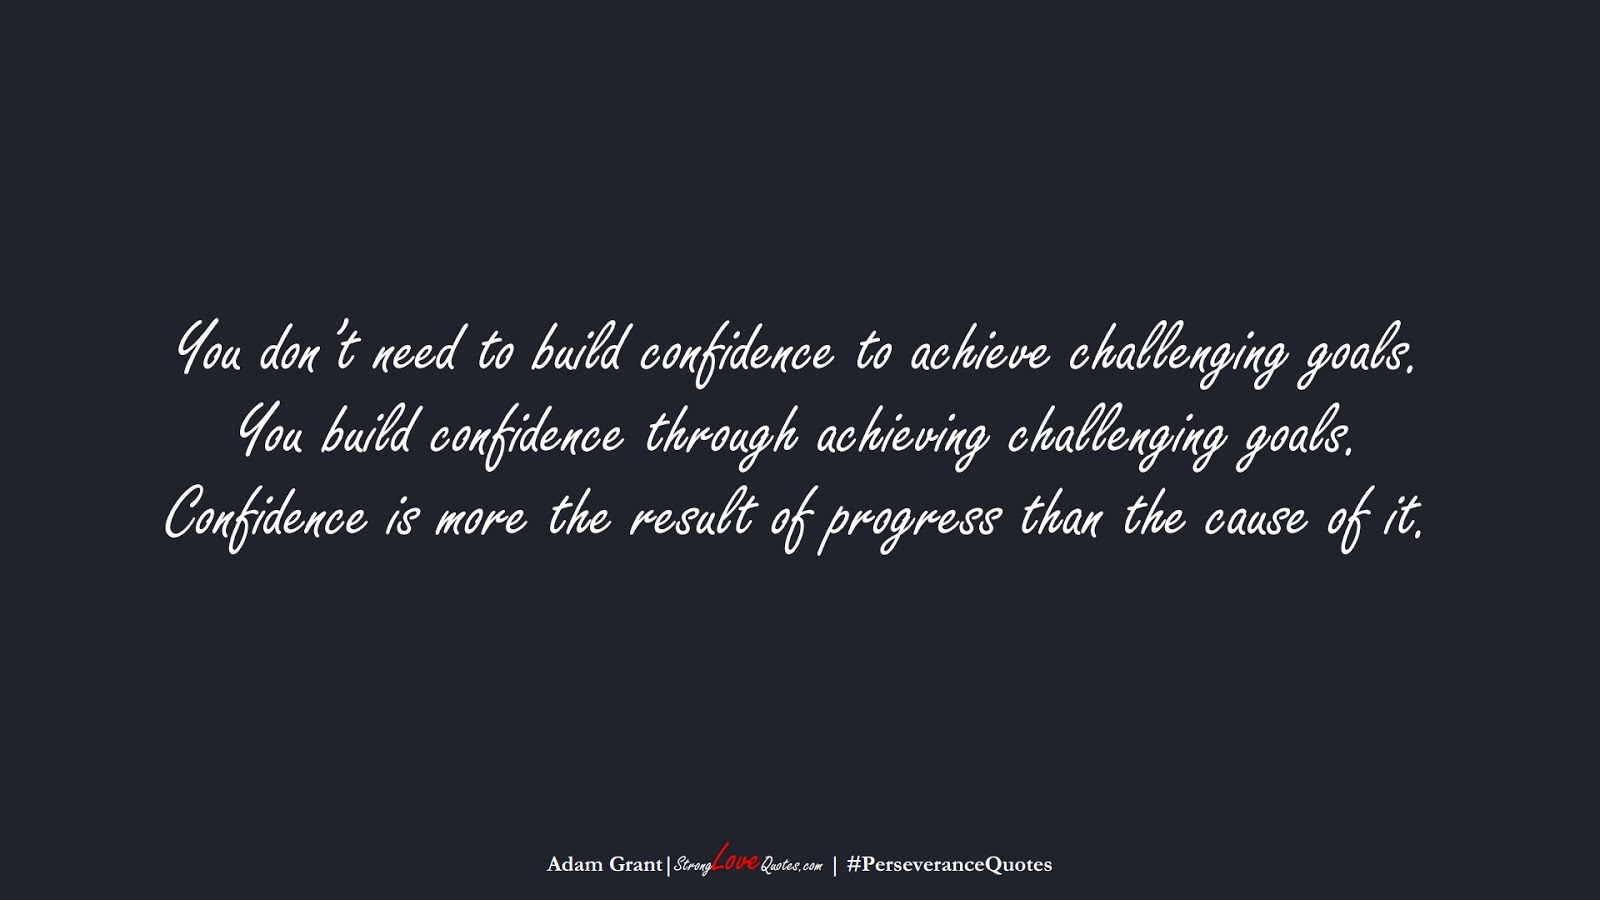 You don't need to build confidence to achieve challenging goals. You build confidence through achieving challenging goals. Confidence is more the result of progress than the cause of it. (Adam Grant);  #PerseveranceQuotes